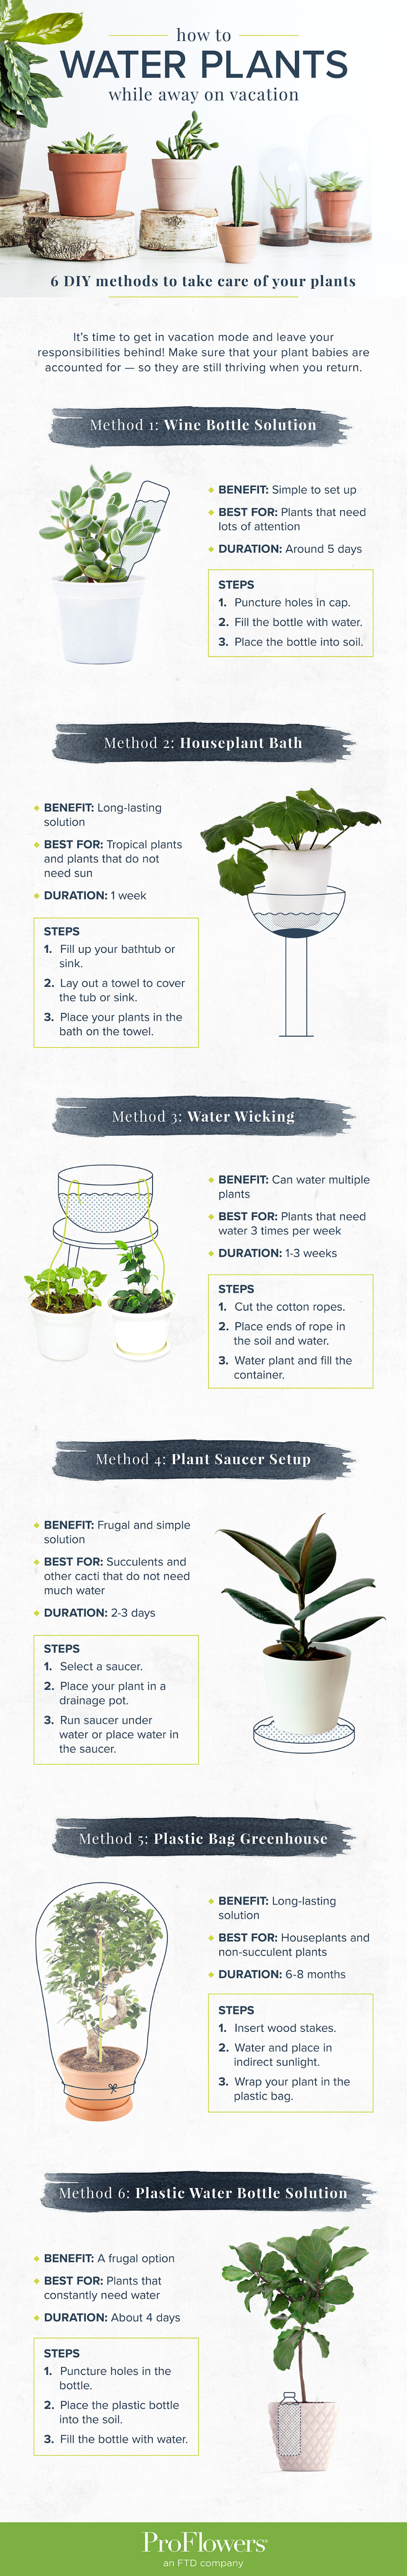 How to Water Plants While Away 20 DIY Methods   ProFlowers Blog ...